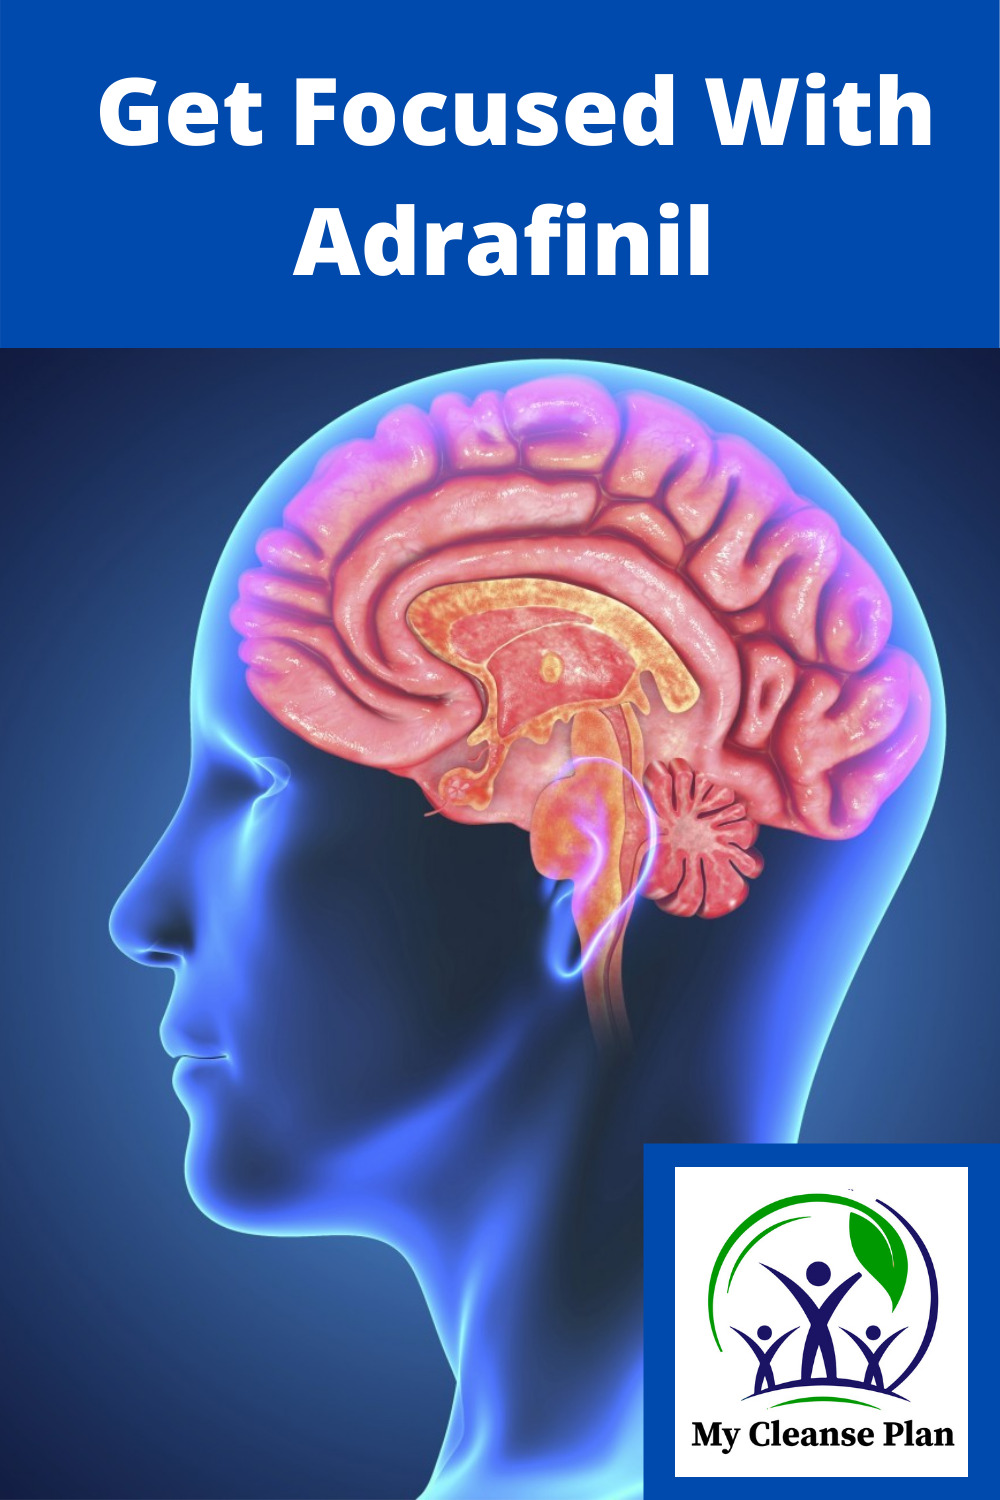 Get Focused With Adrafinil